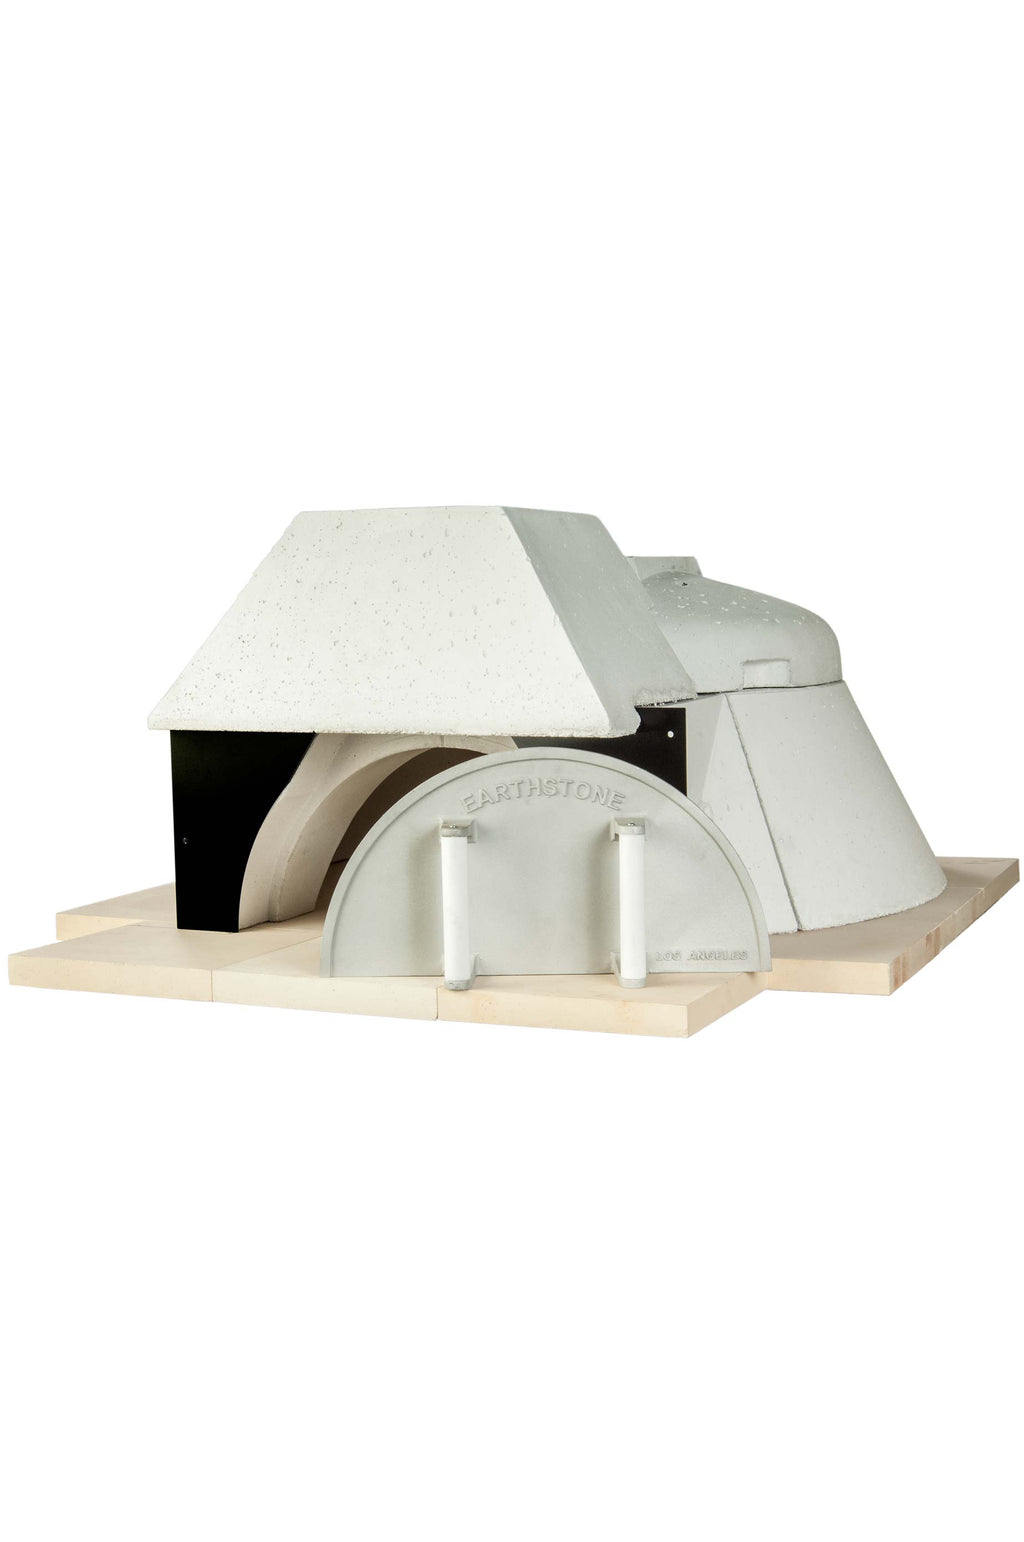 Earthstone Model 90 Modular Wood Fired Oven Kit